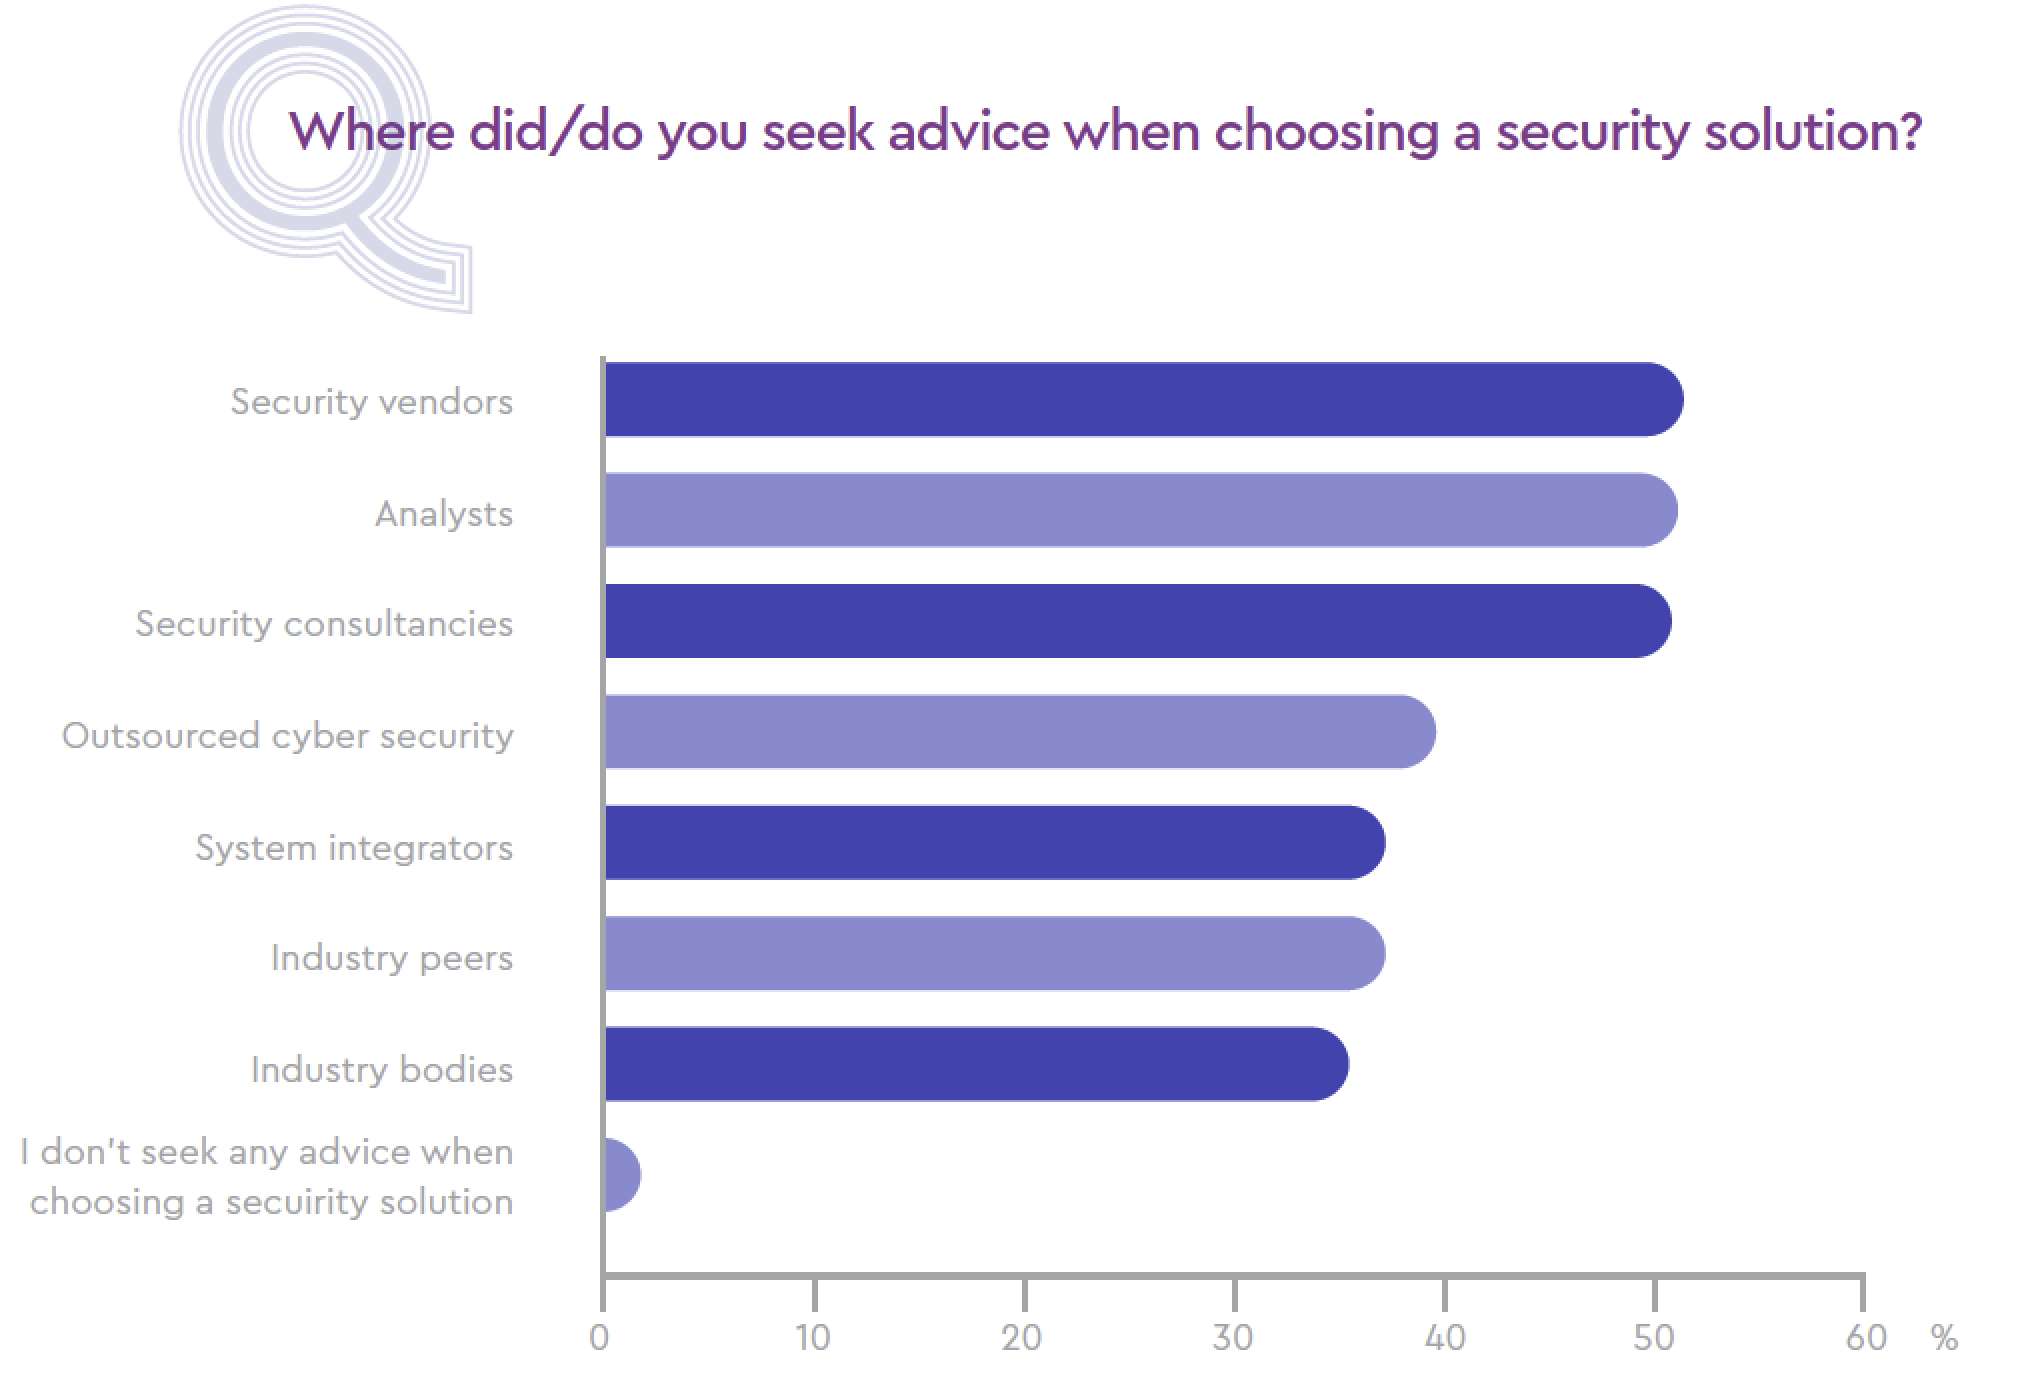 Where did/do you seek advice when choosing a security solution?